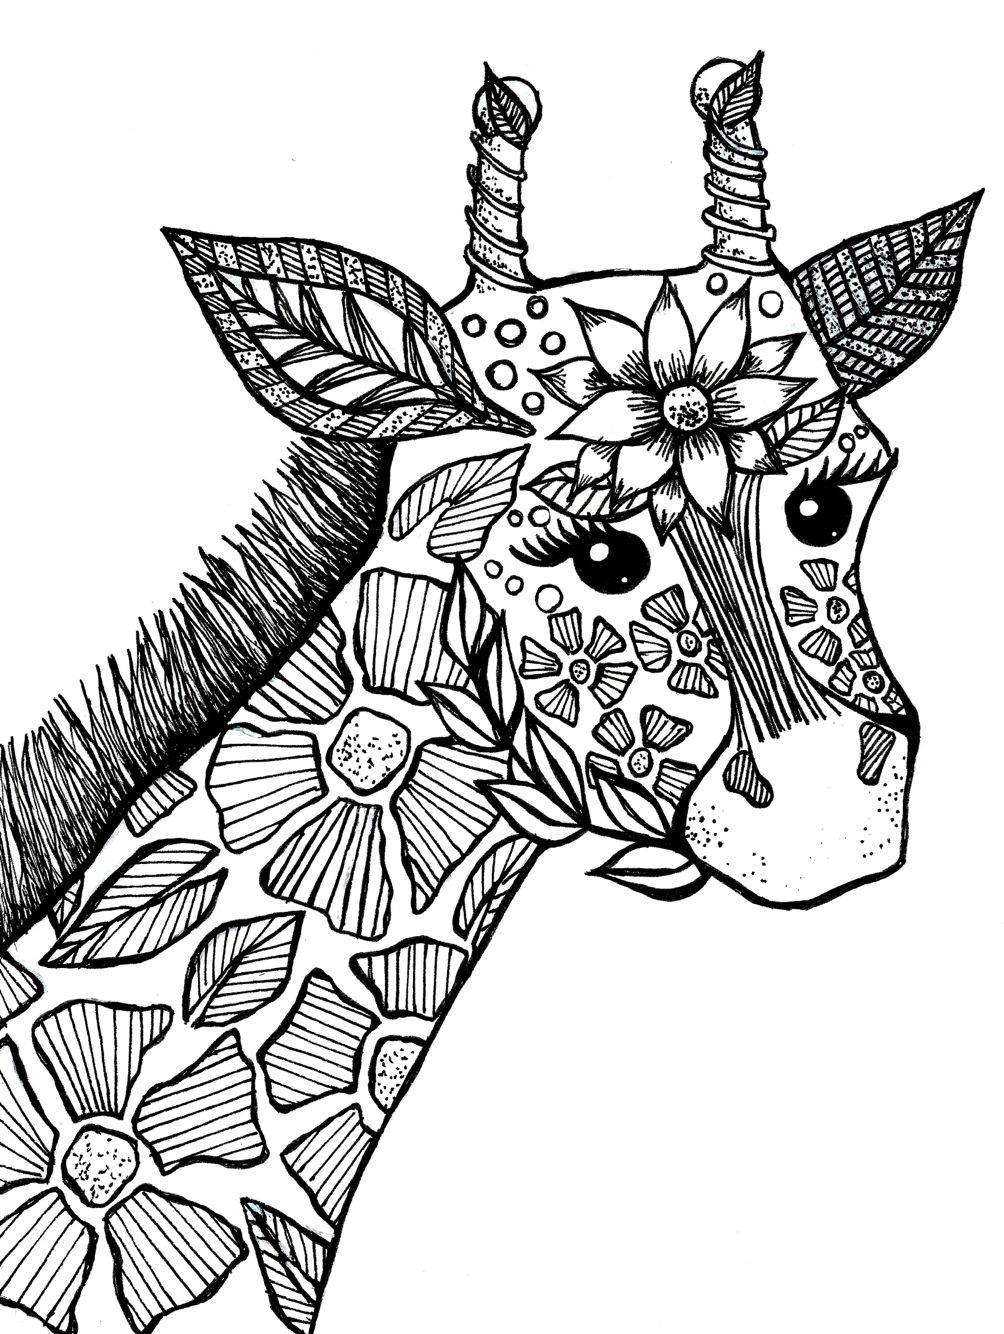 1004x1334 Giraffe Adult Coloring Book Page Drawings I've Made